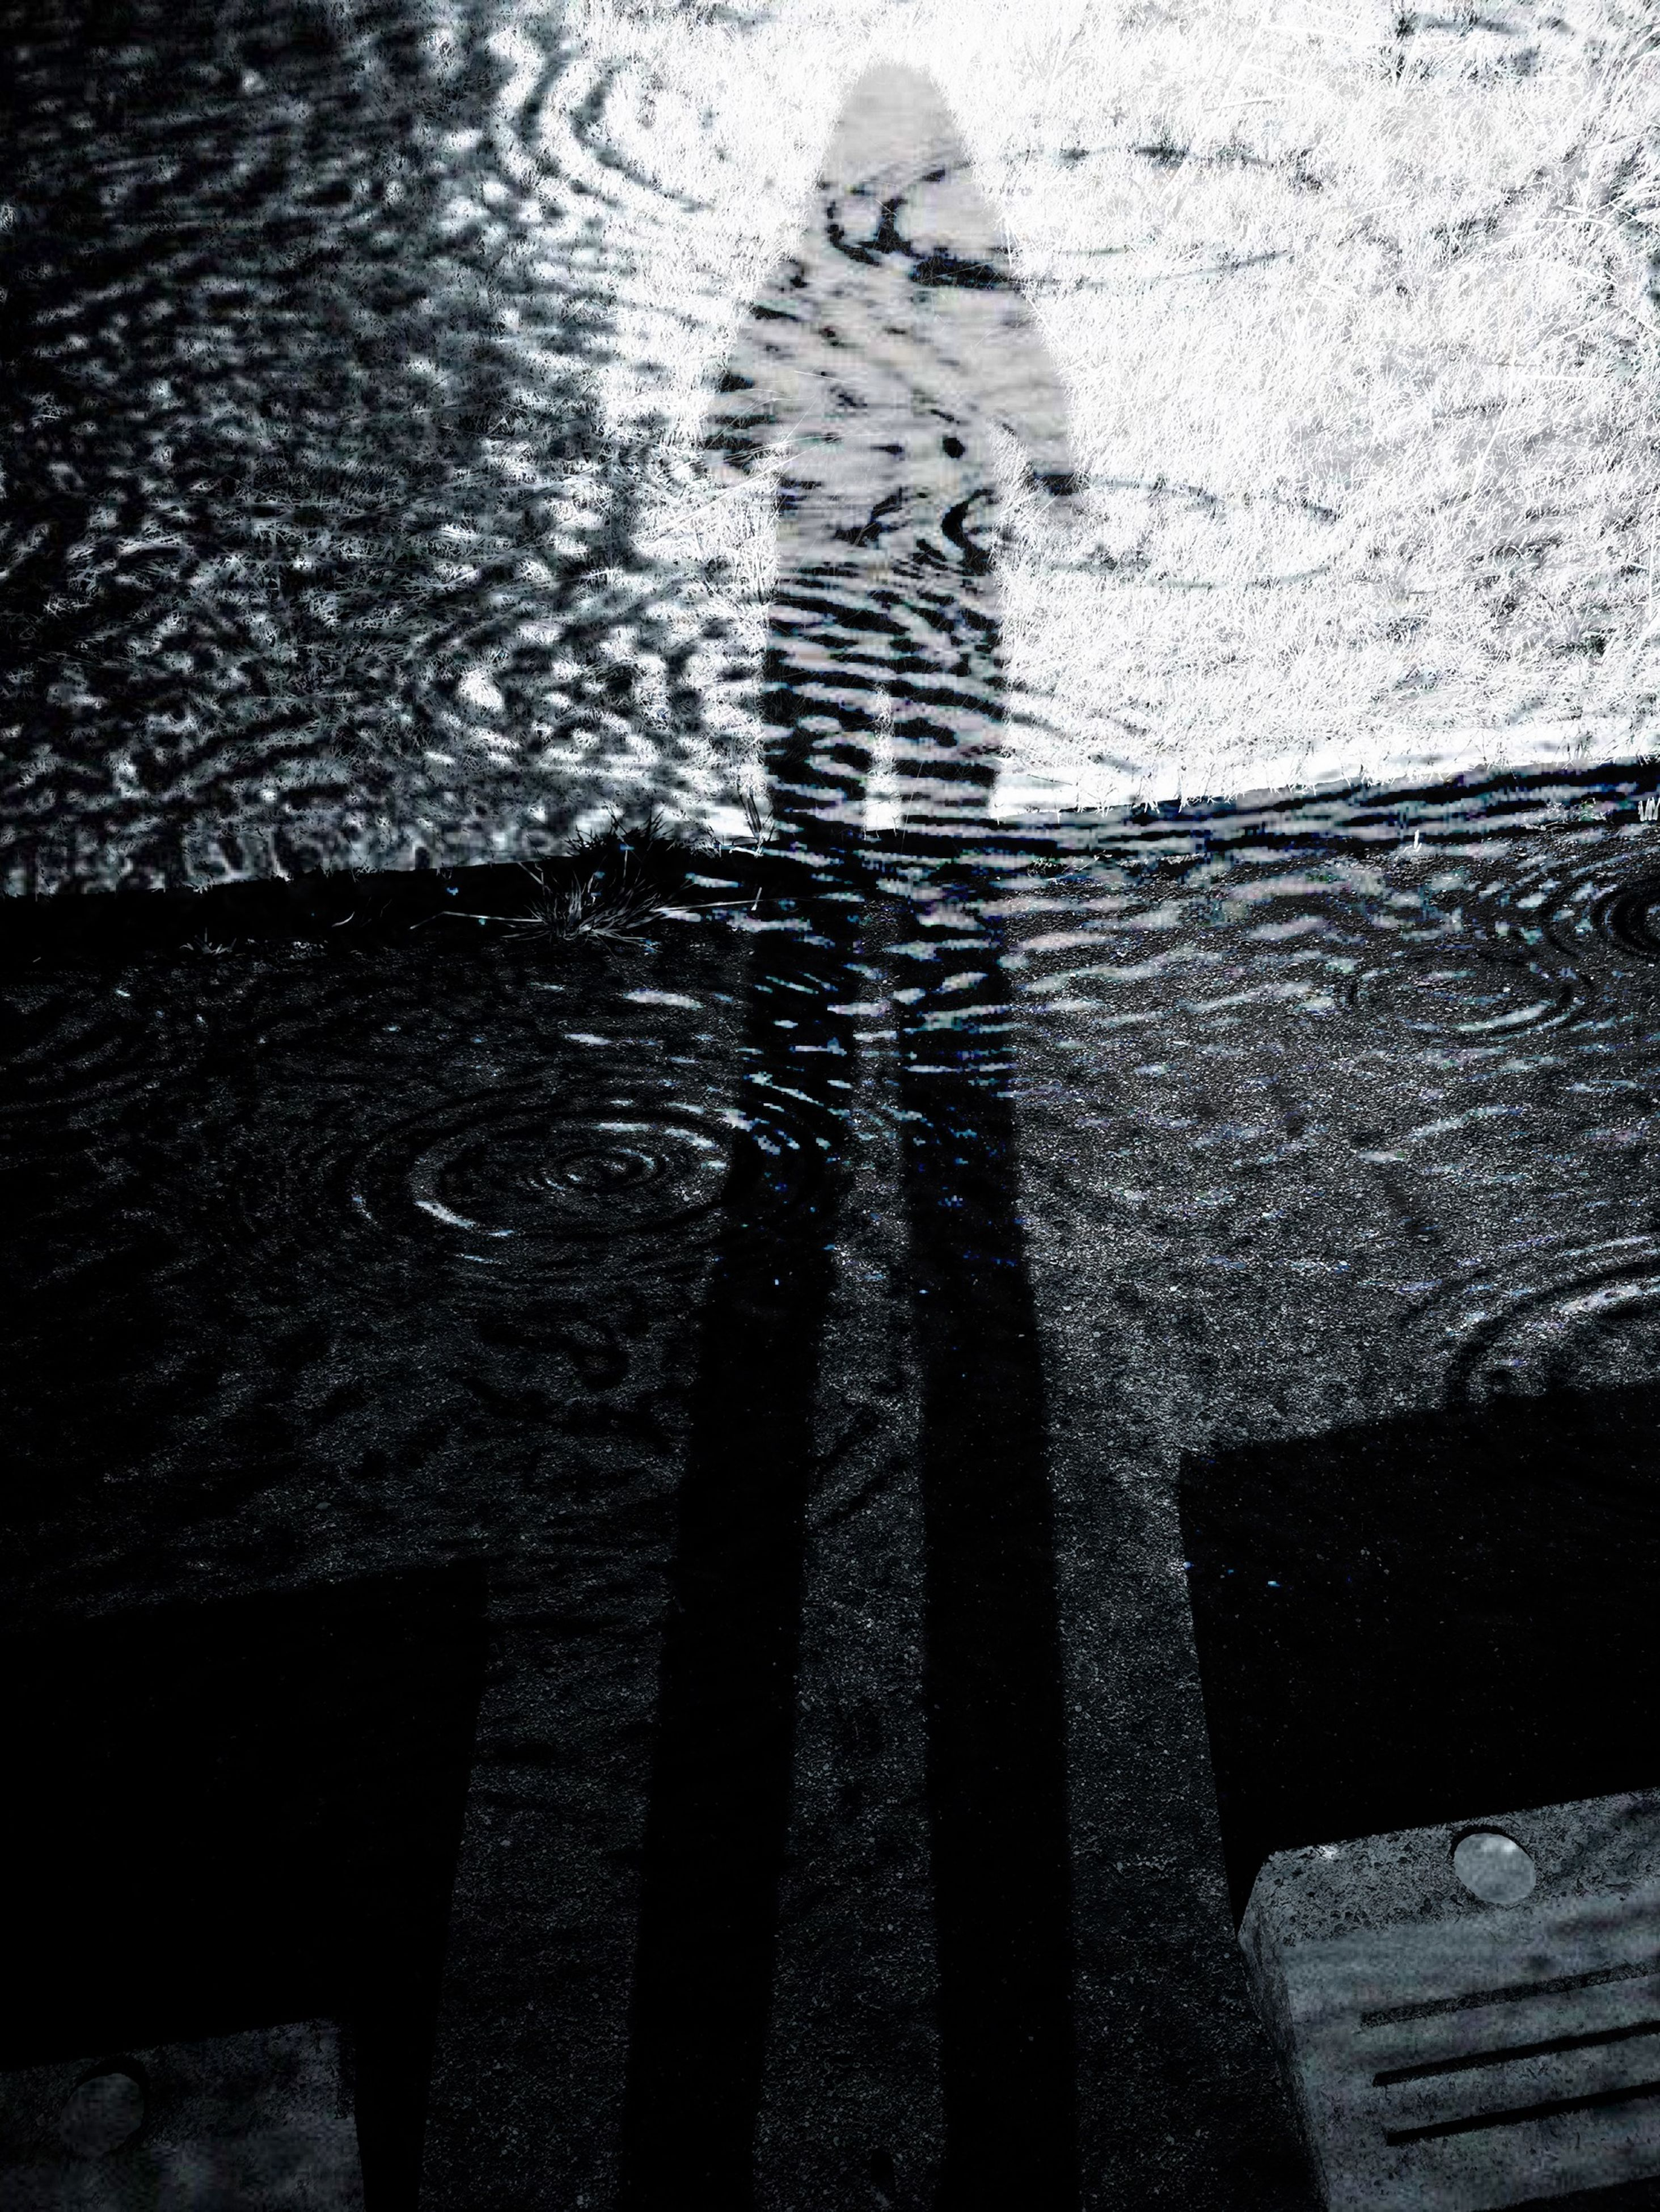 shadow, high angle view, sunlight, water, street, silhouette, focus on shadow, puddle, outdoors, built structure, day, wet, textured, building exterior, reflection, architecture, cobblestone, unrecognizable person, sidewalk